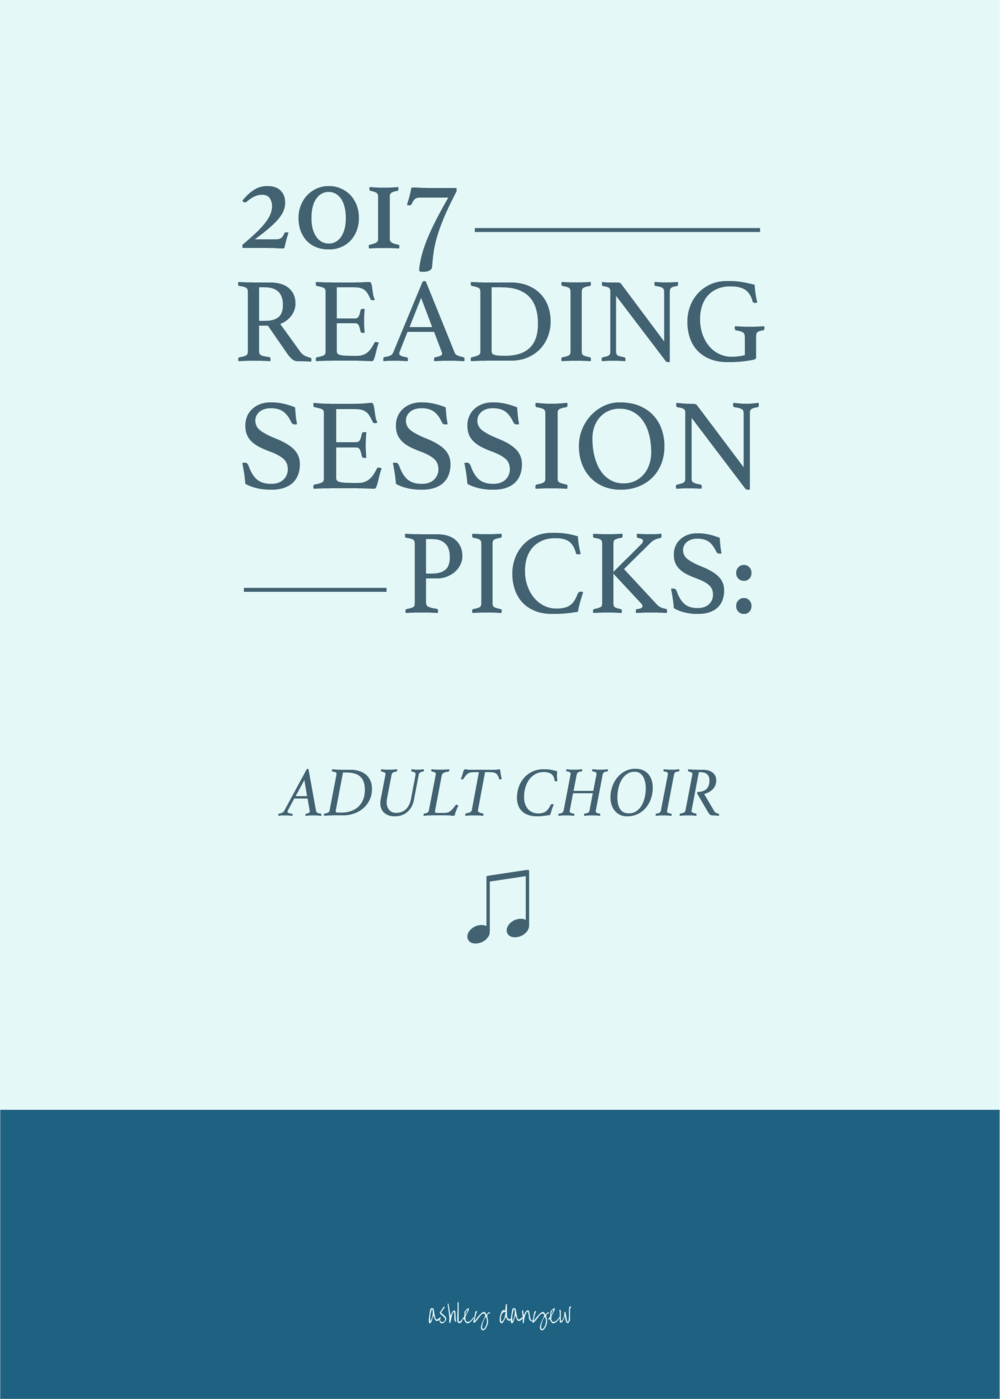 2017 Reading Session Picks_Adult Choir-06.png